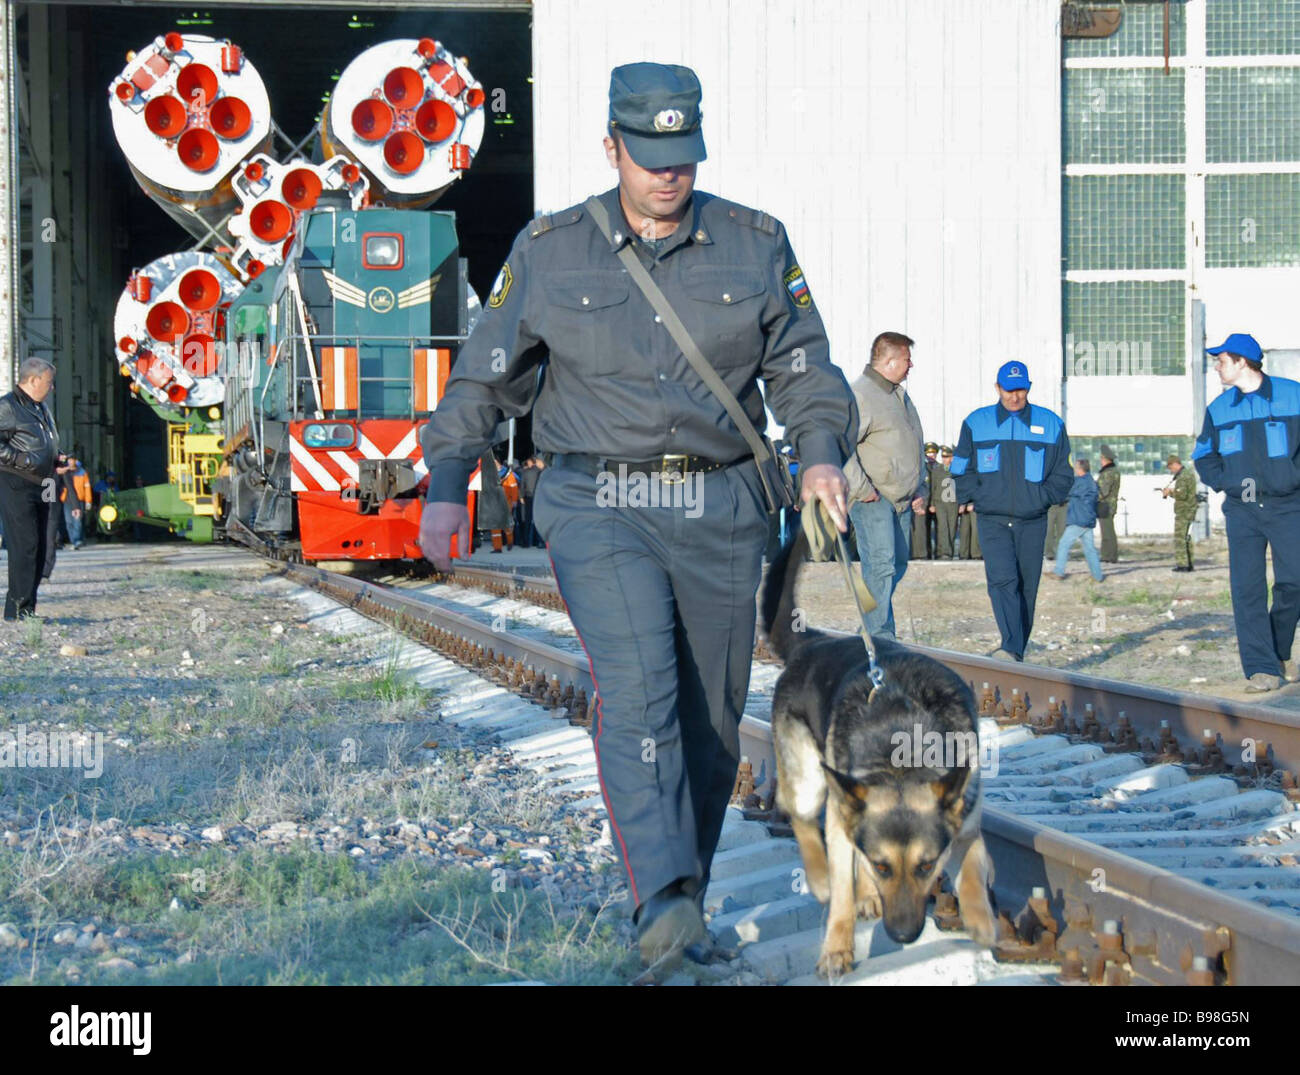 Checking tracks for explosives at the Baikonur space center - Stock Image